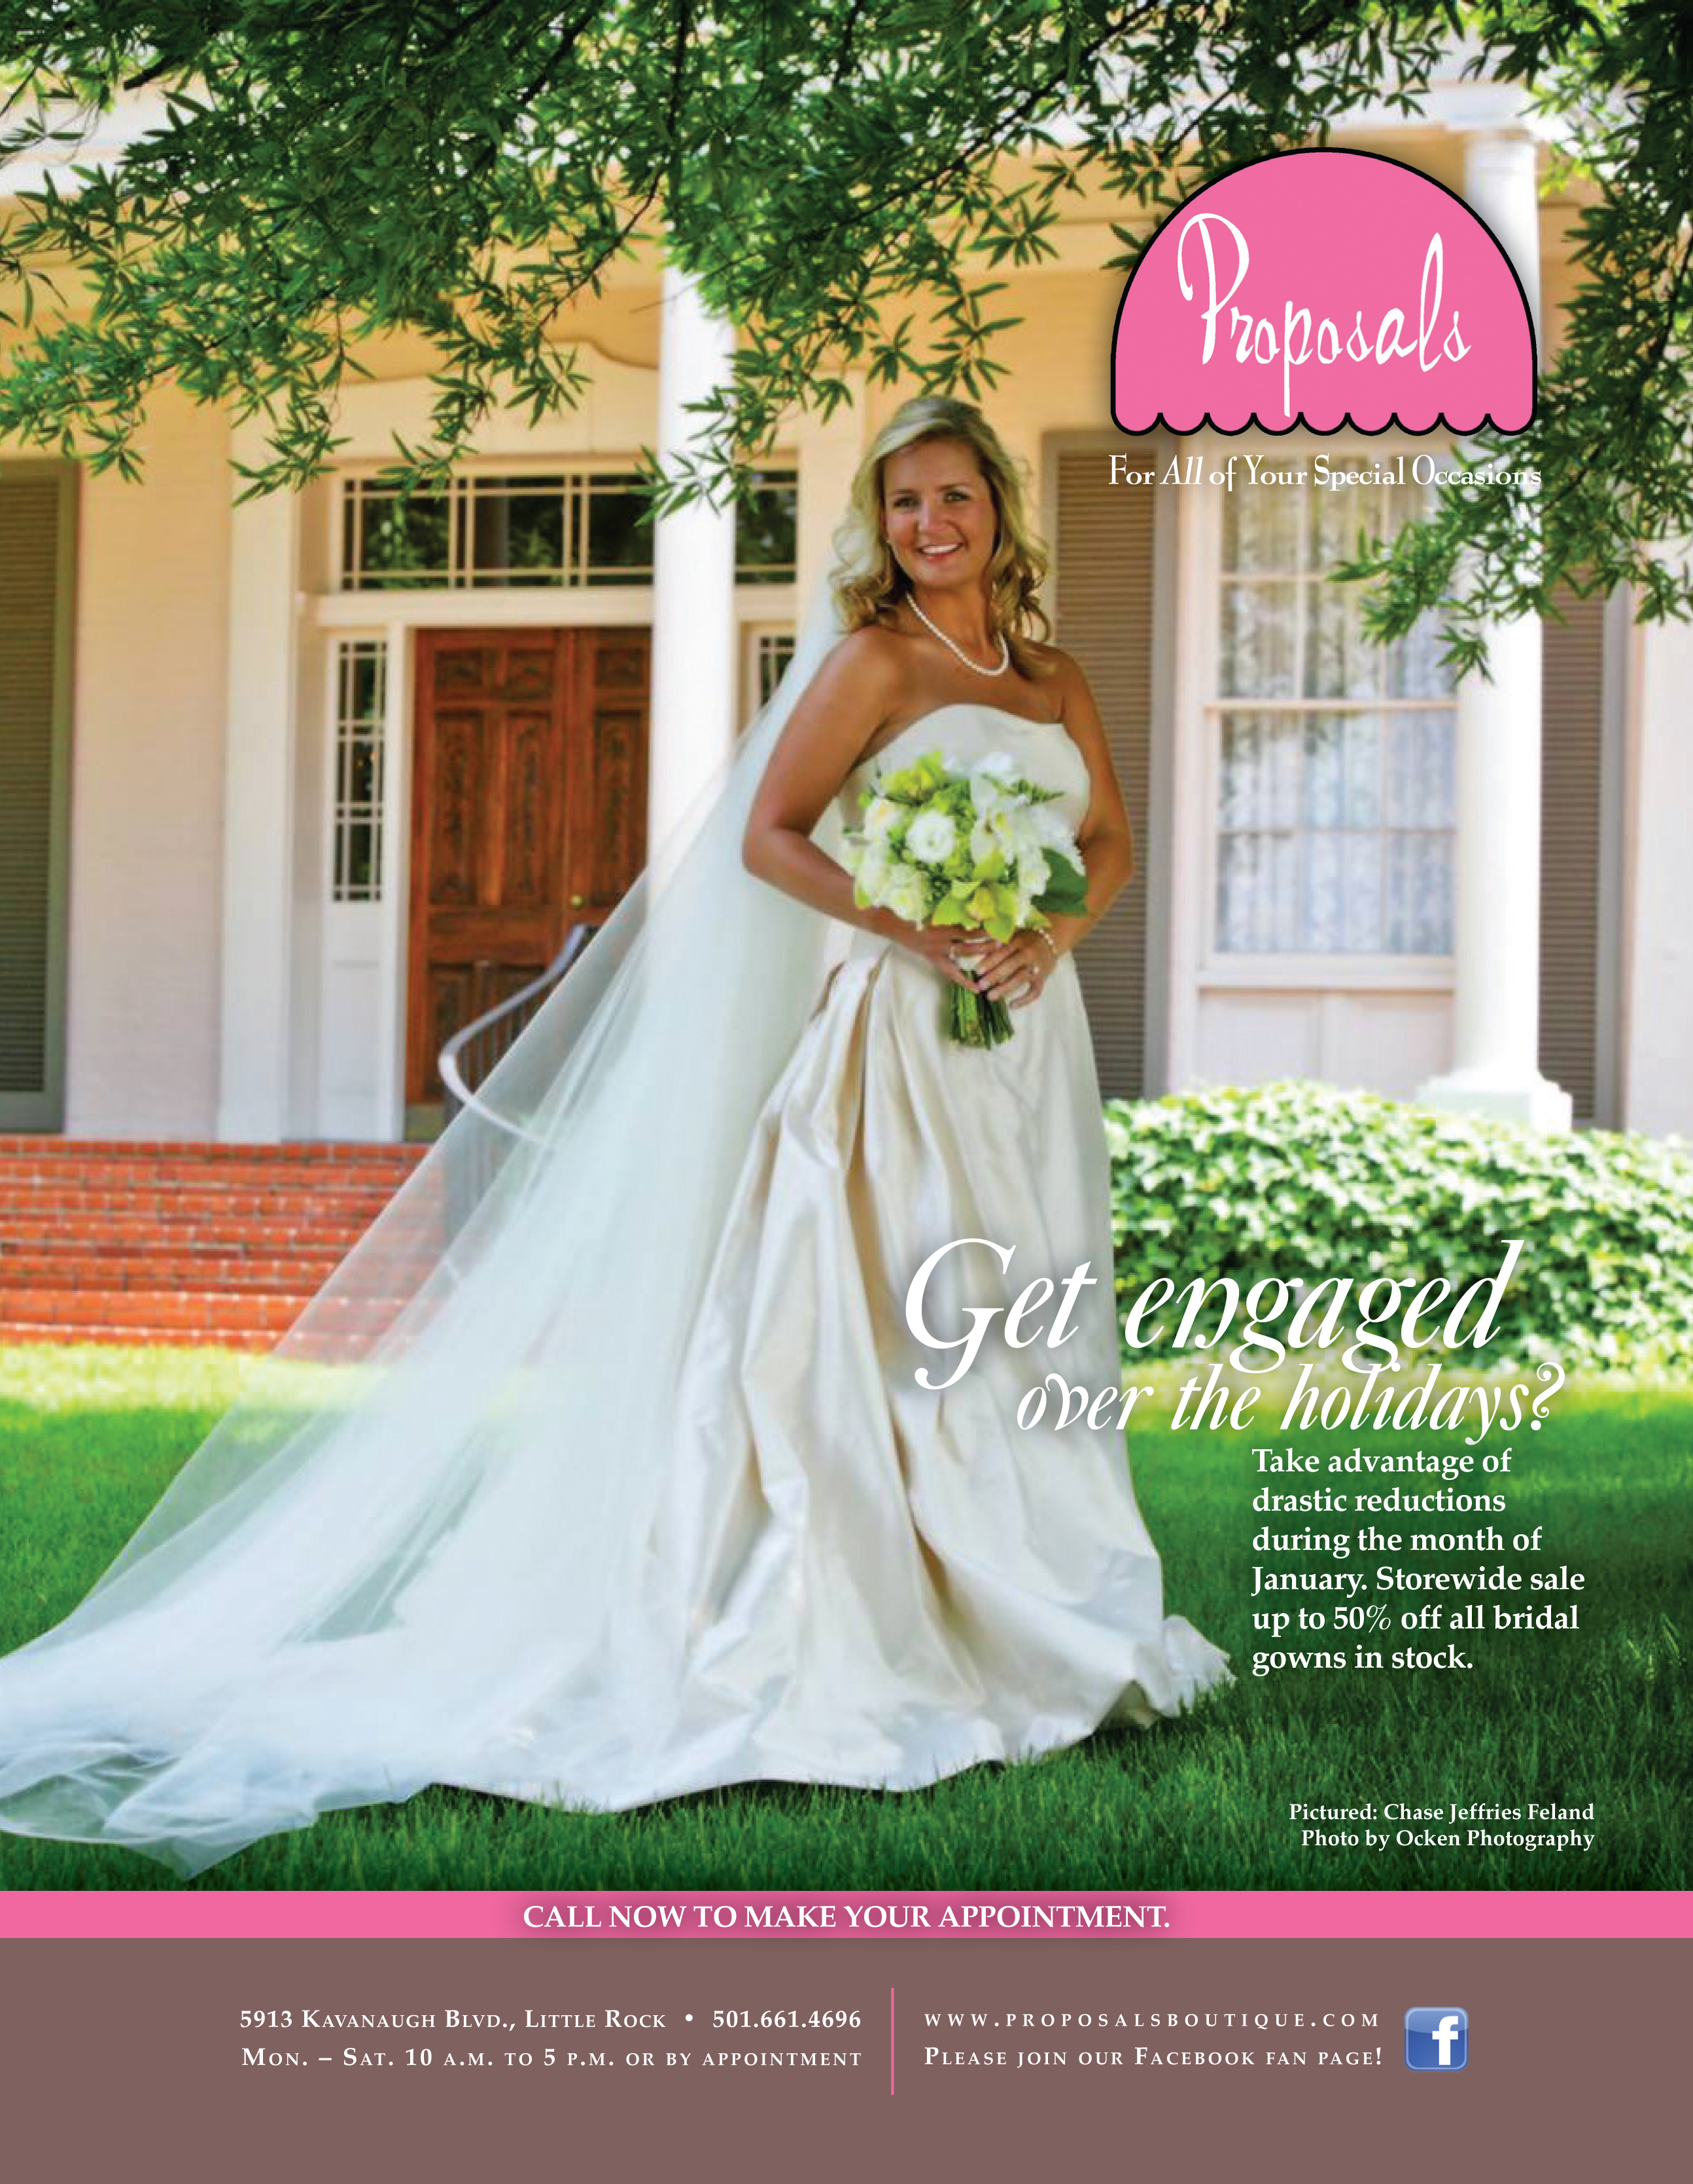 Keep An Eye Out For Our Photography Featured In The New Ad Proposals Dress Shop Located Heights Arkansas Bride Magazine